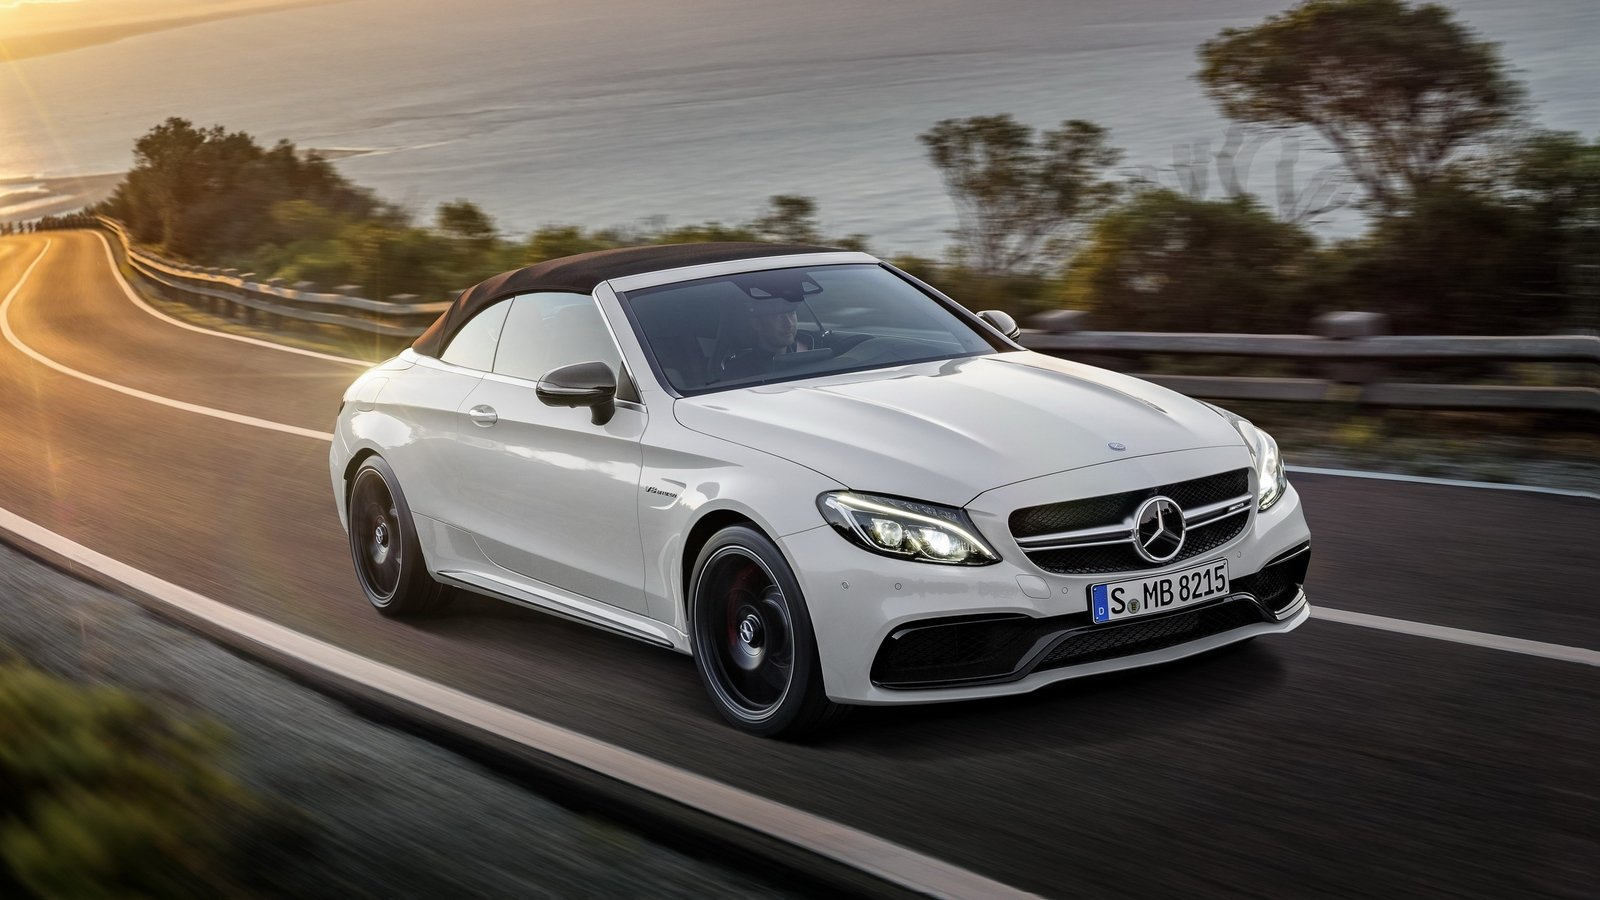 2017 mercedes amg c63 cabriolet review top speed. Black Bedroom Furniture Sets. Home Design Ideas